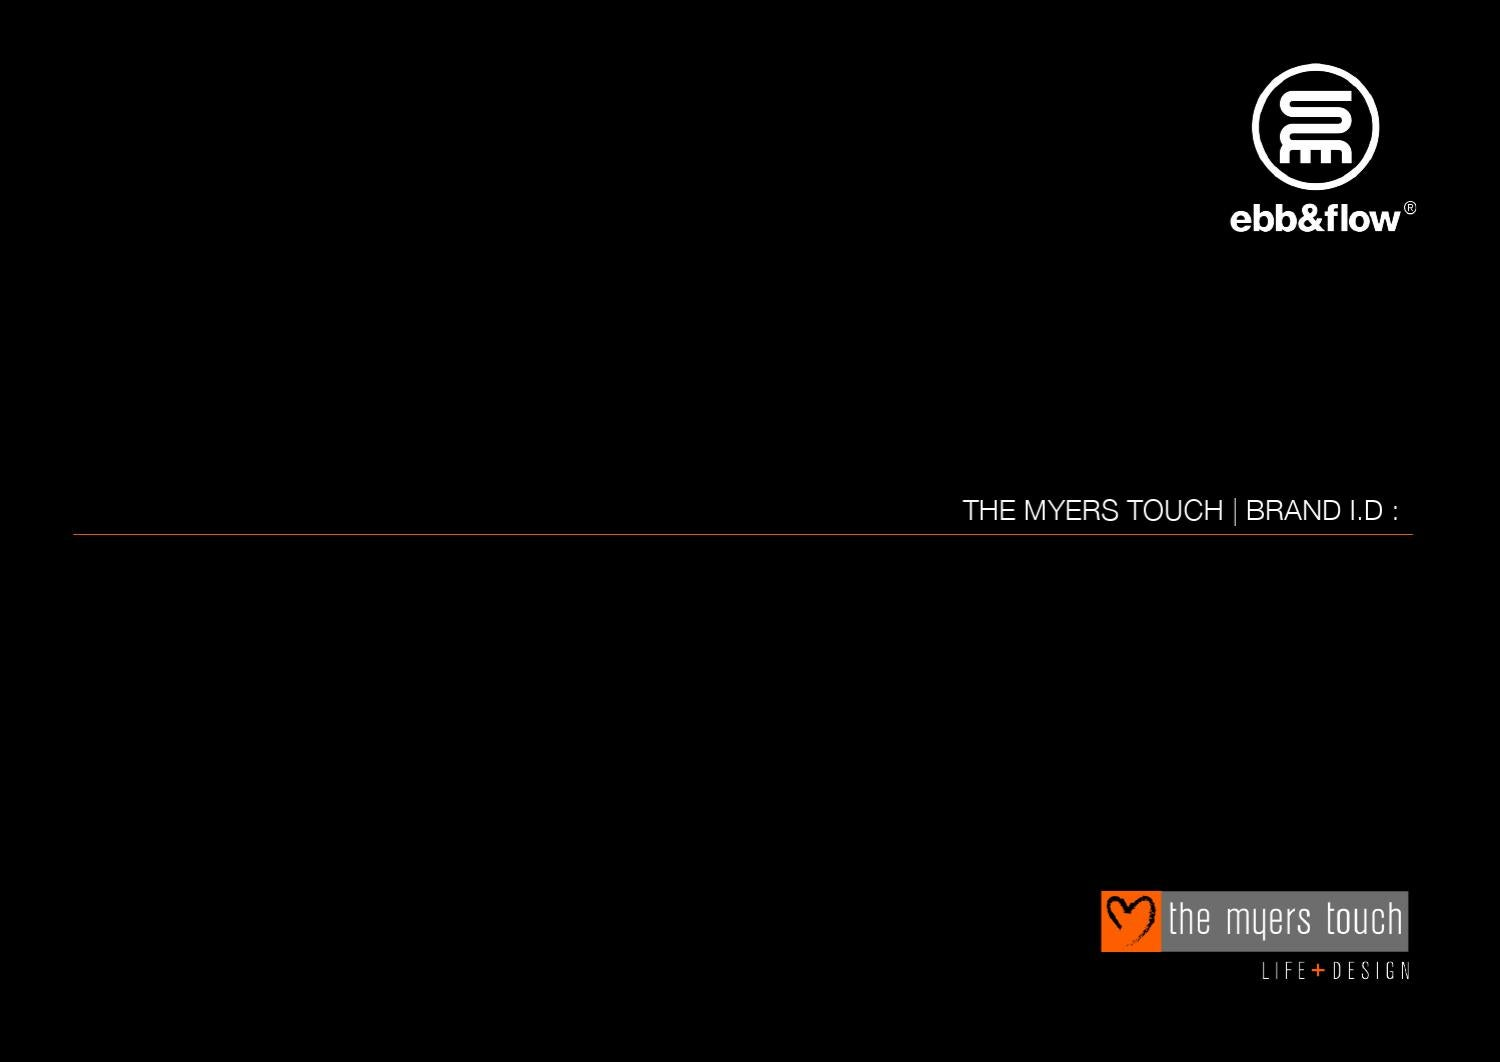 THE MYERS TOUCH   BRAND I D  by ebb&flow - issuu